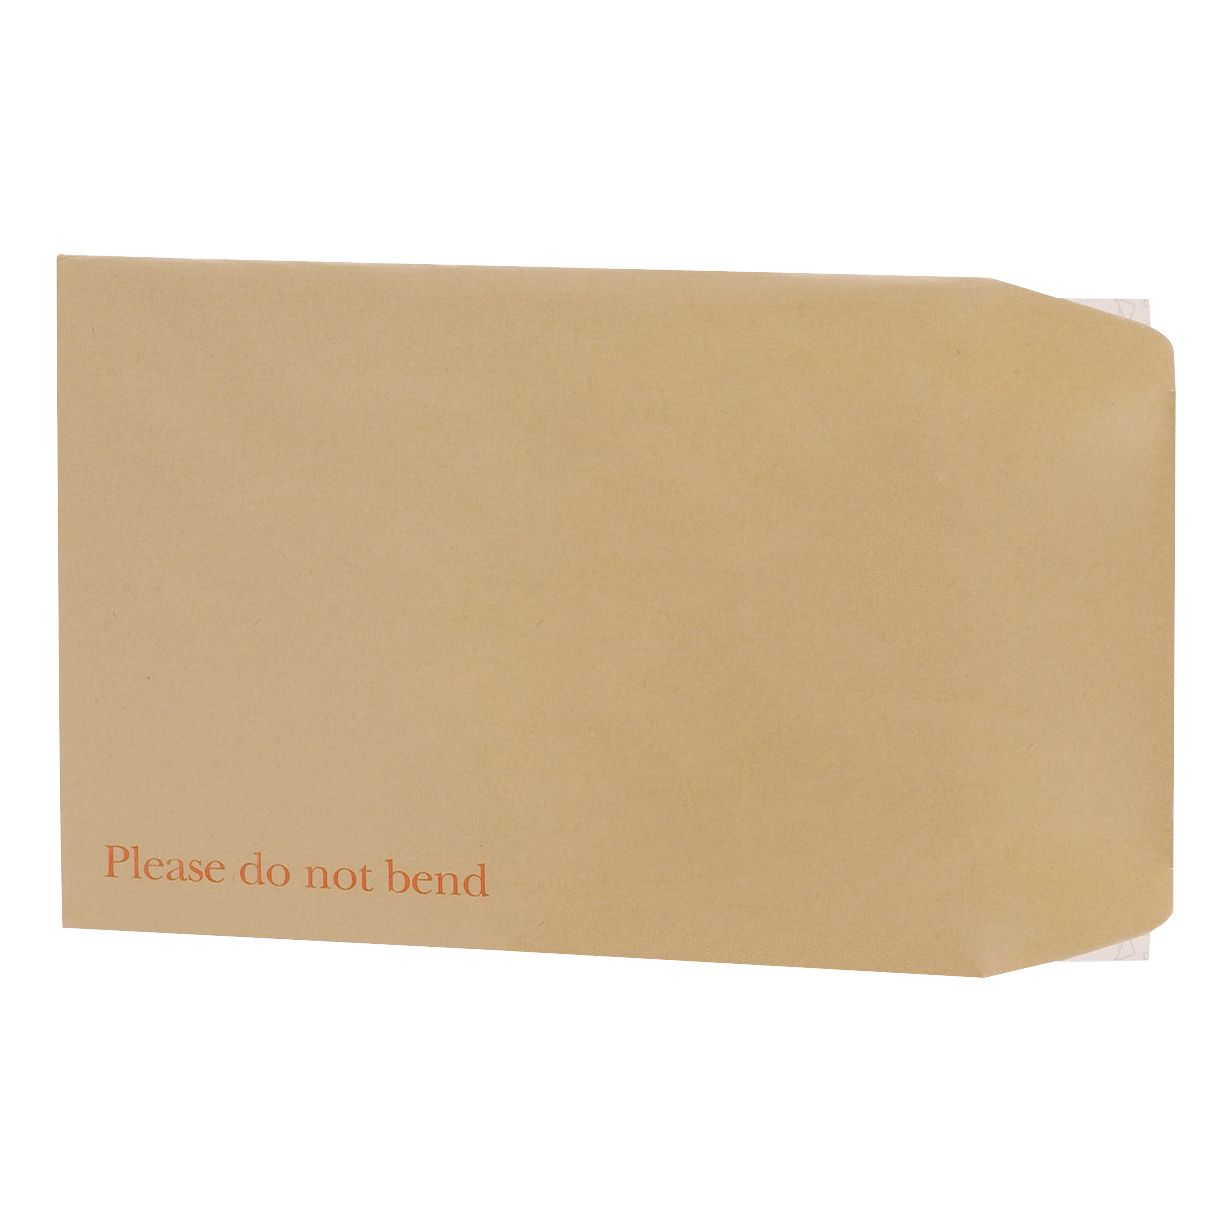 5 Star Office Envelopes Recycled Board Backed Hot Melt Peel & Seal 444x368mm 120gsm Manilla Pack 50